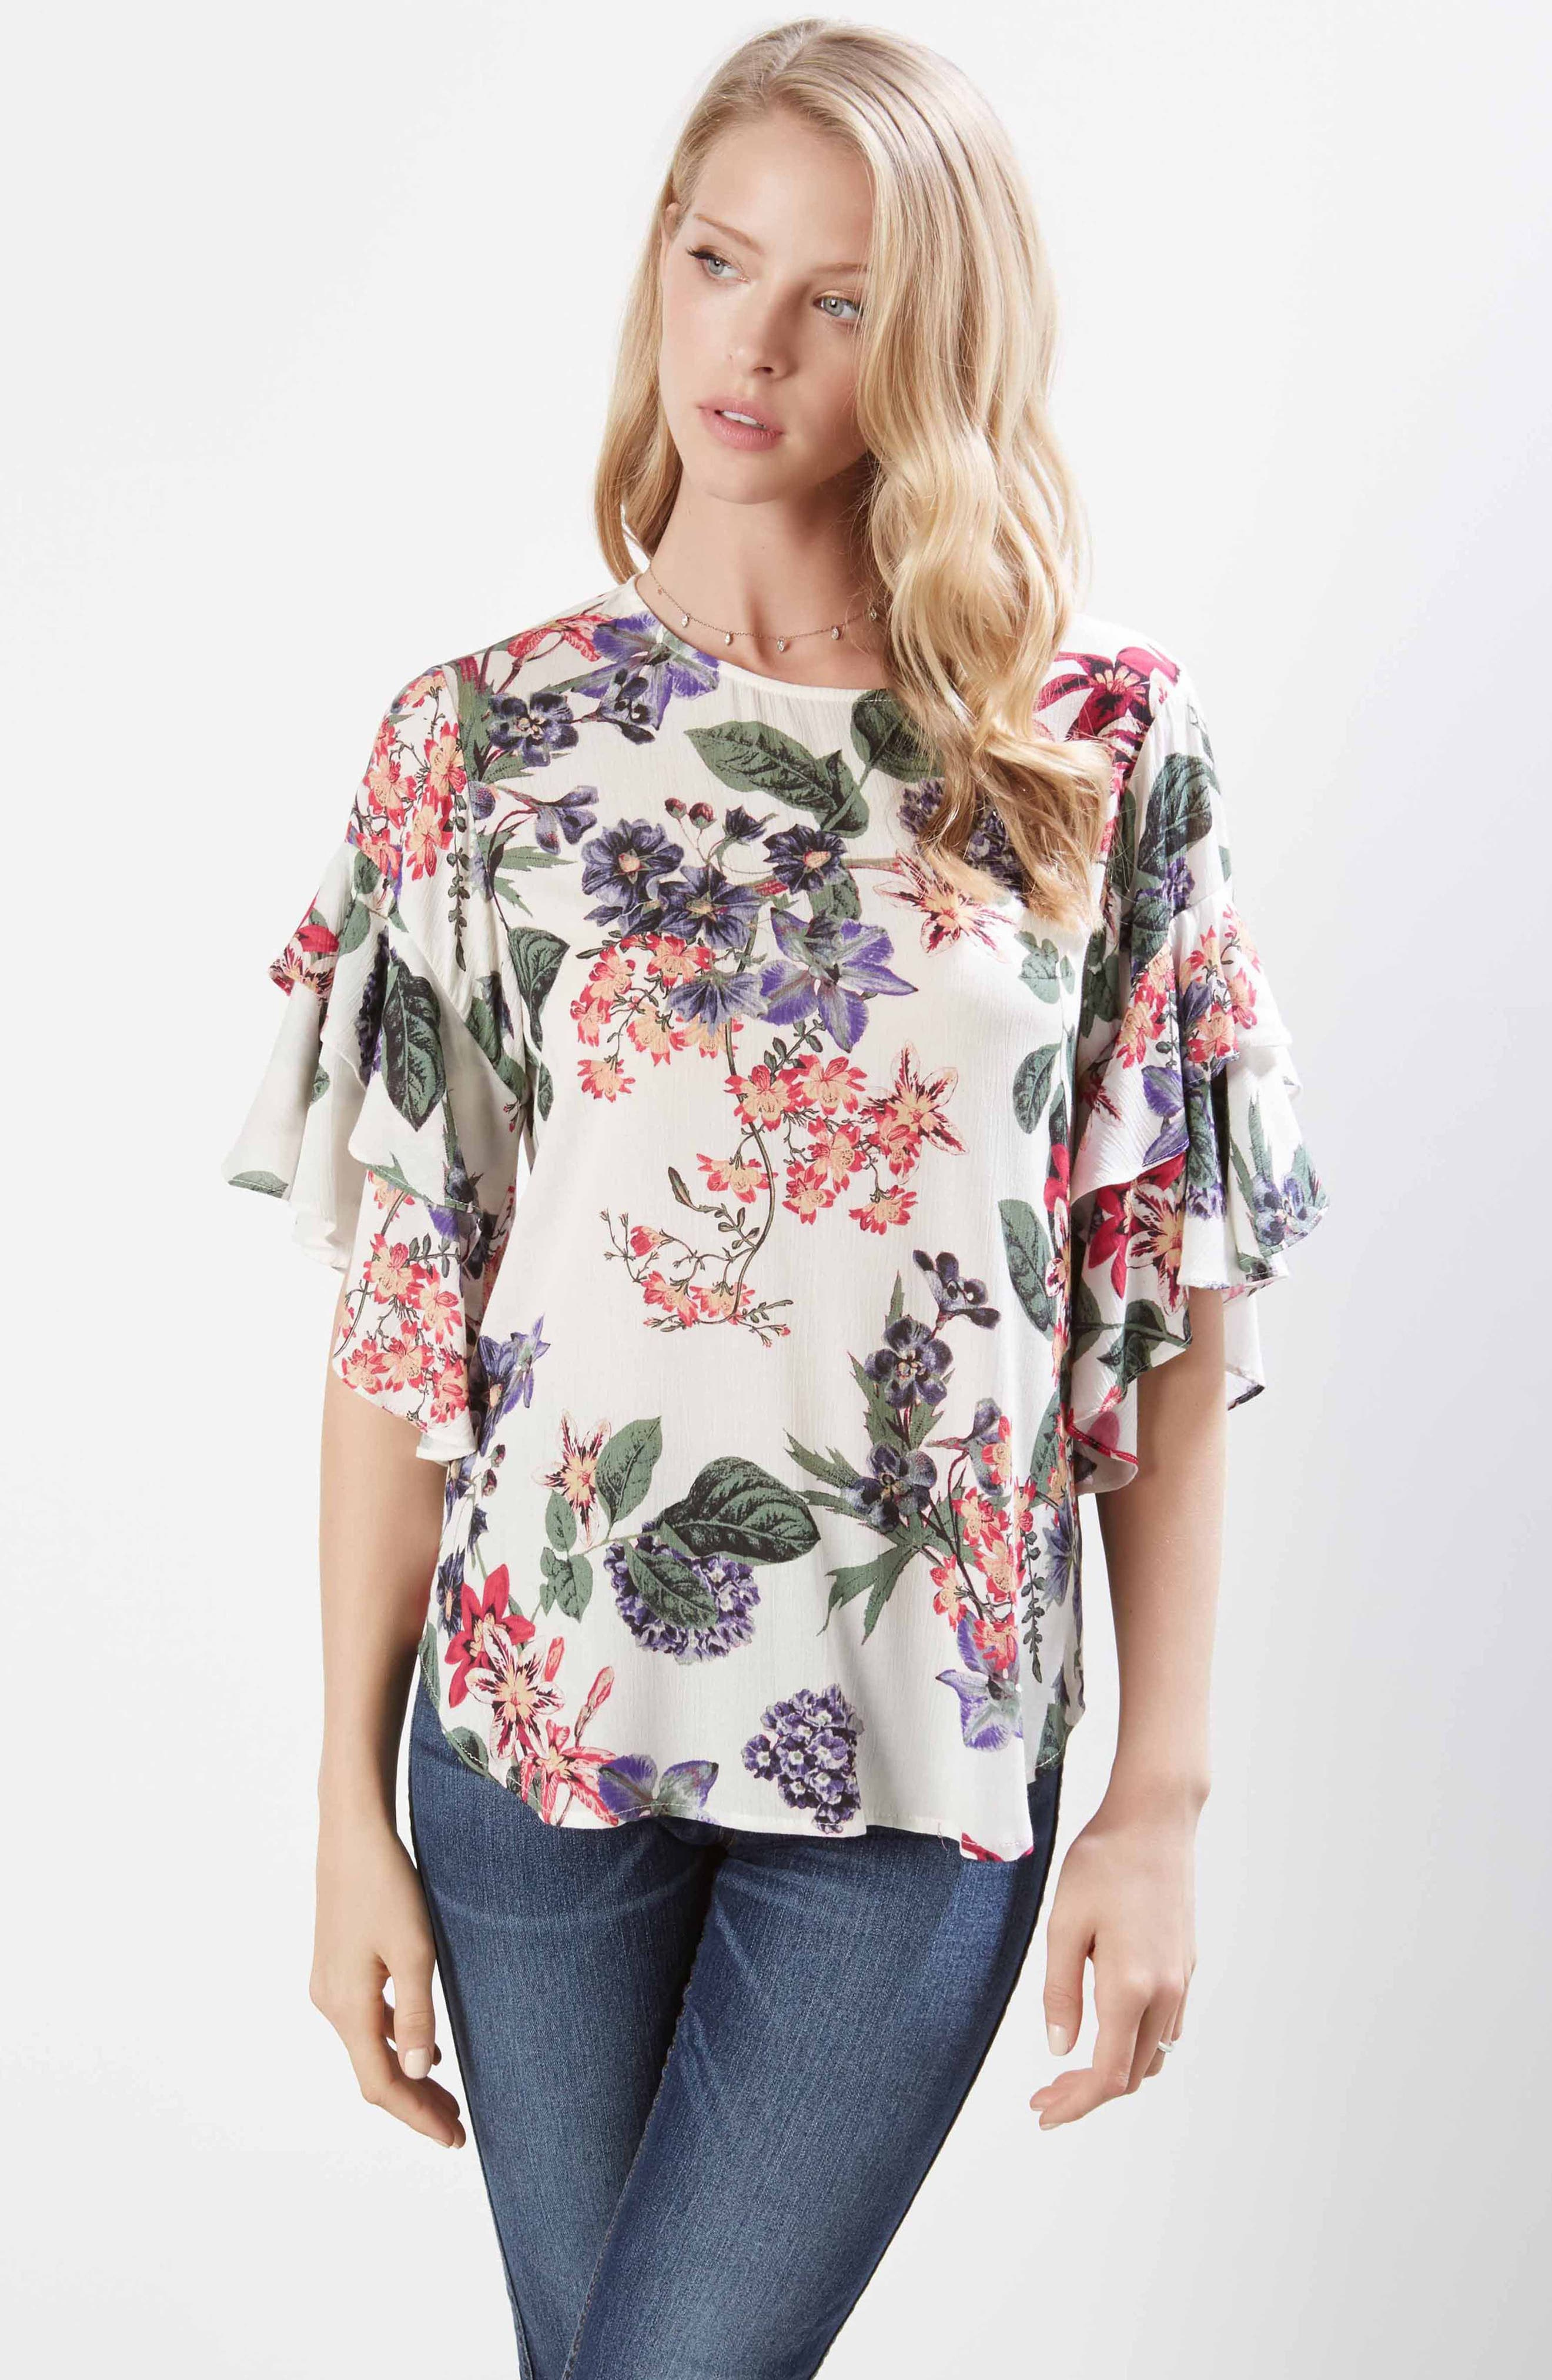 Ruffle Sleeve Floral Top,                             Alternate thumbnail 3, color,                             160